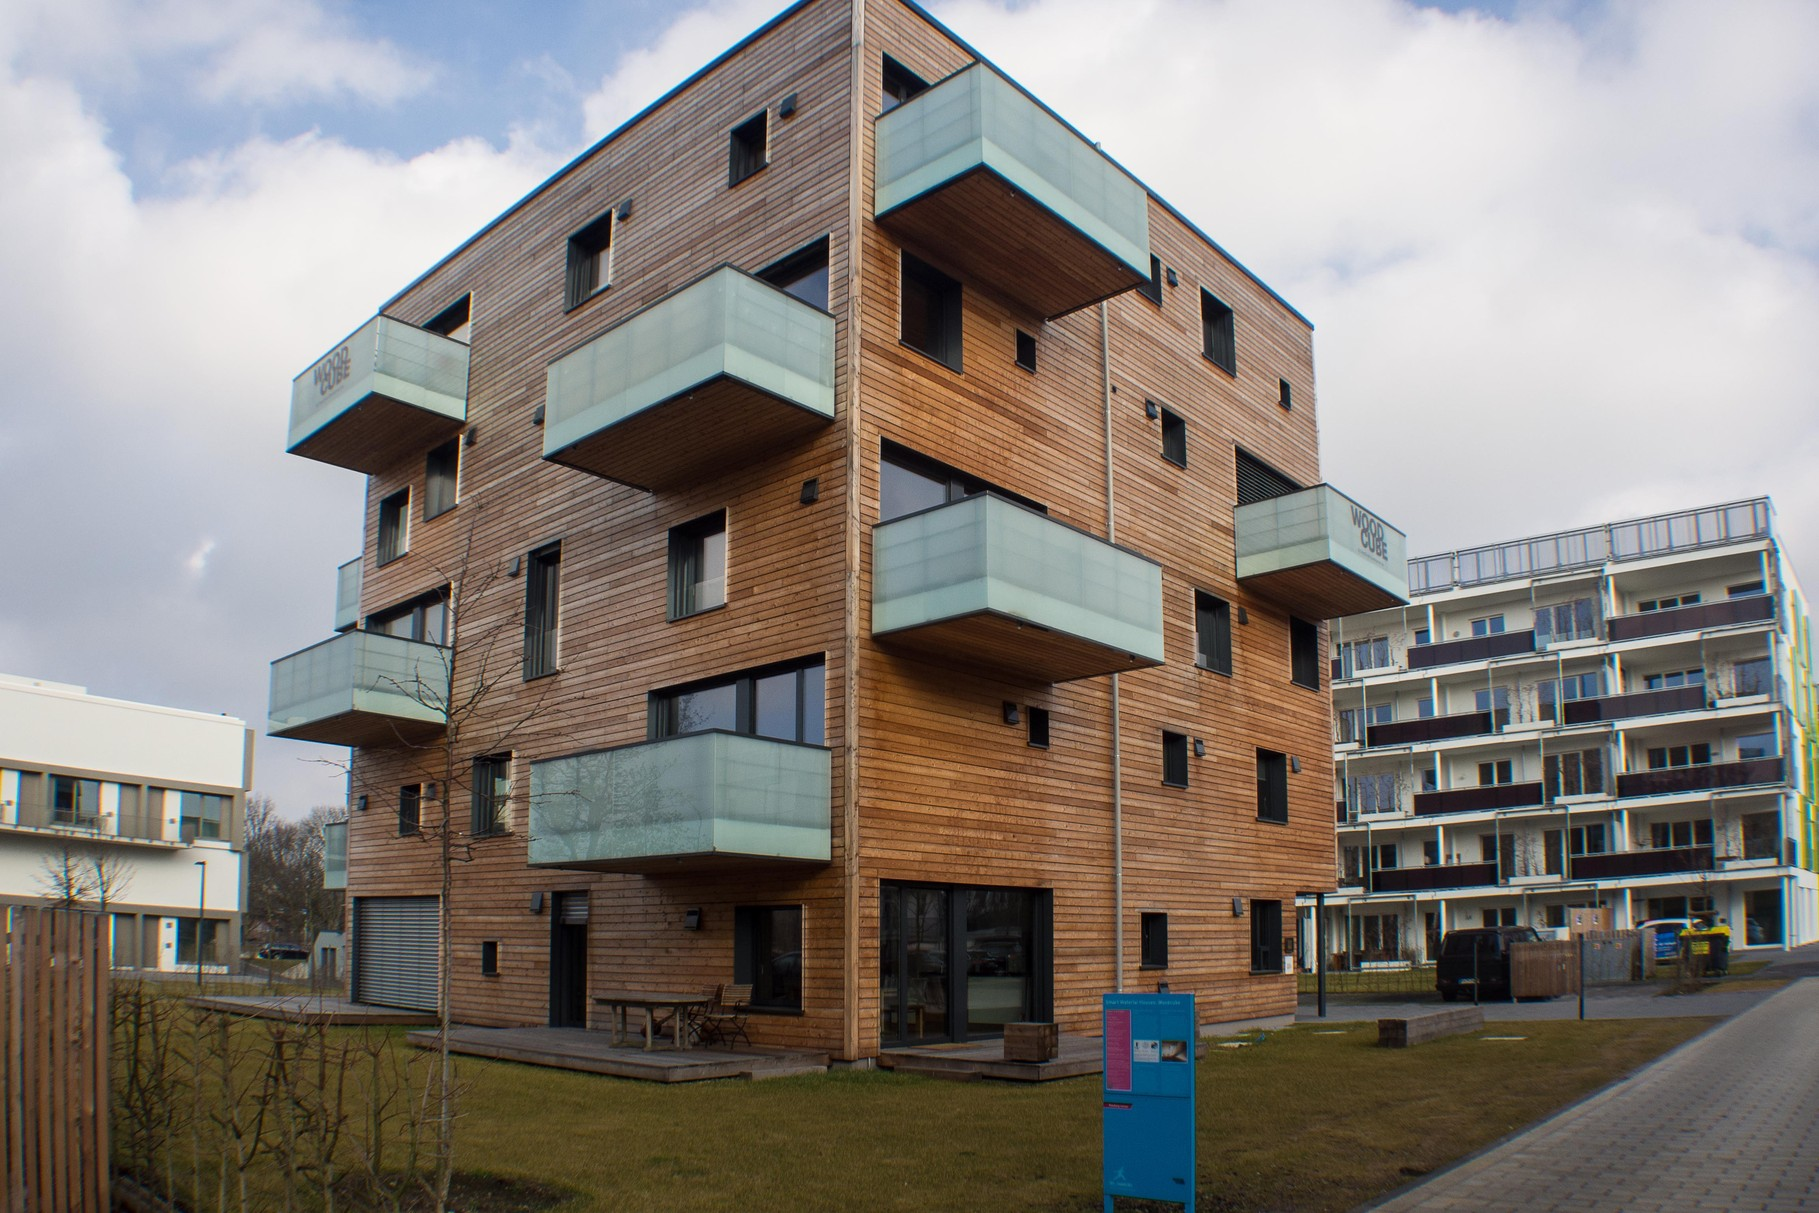 Smart Material Houses - Wood Cube